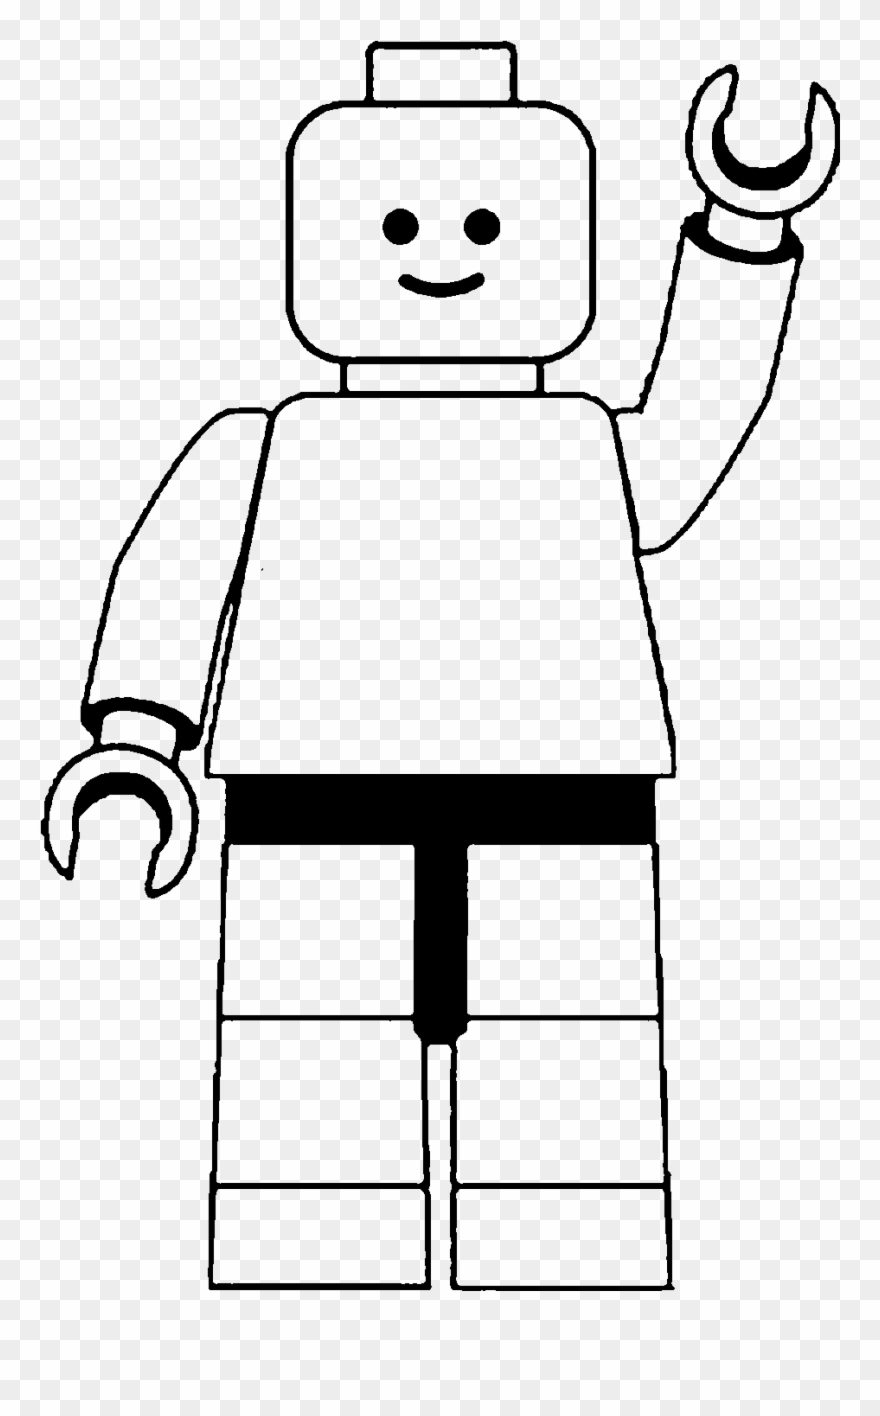 Lego Man Clip Art Black And White.